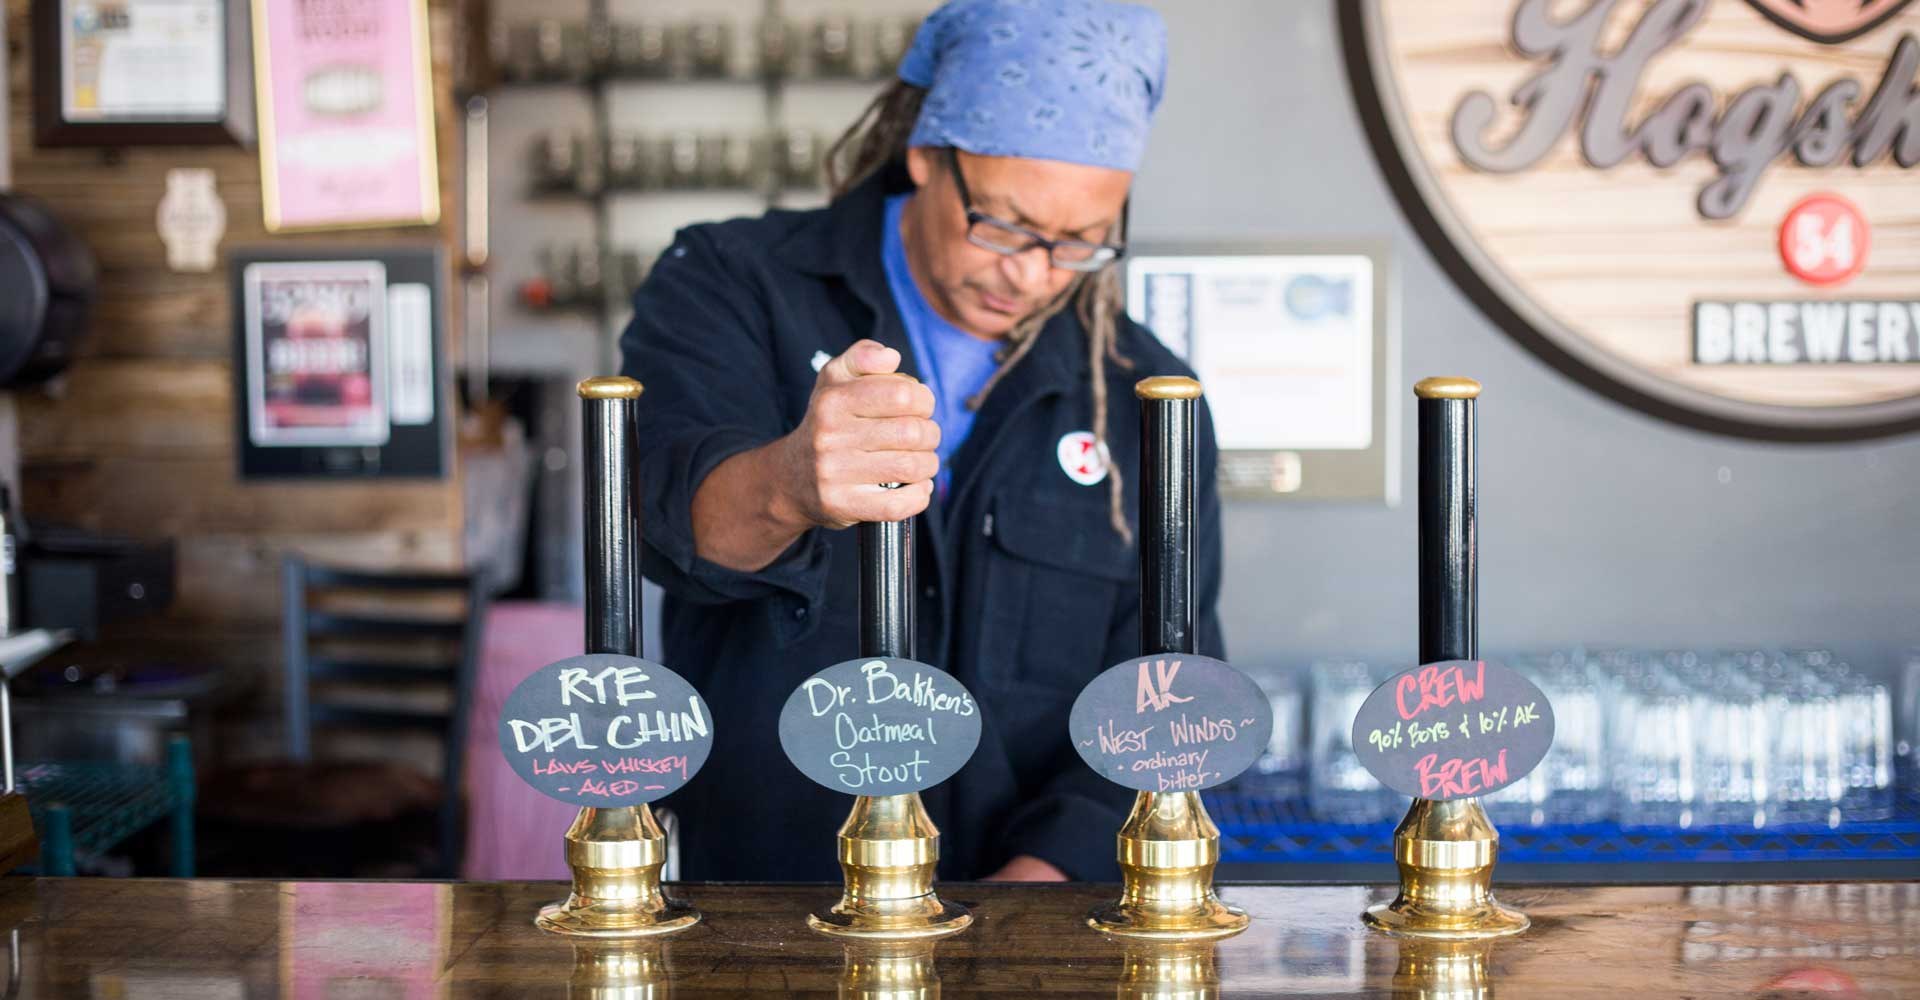 Brewers' Perspectives: Cask Ale